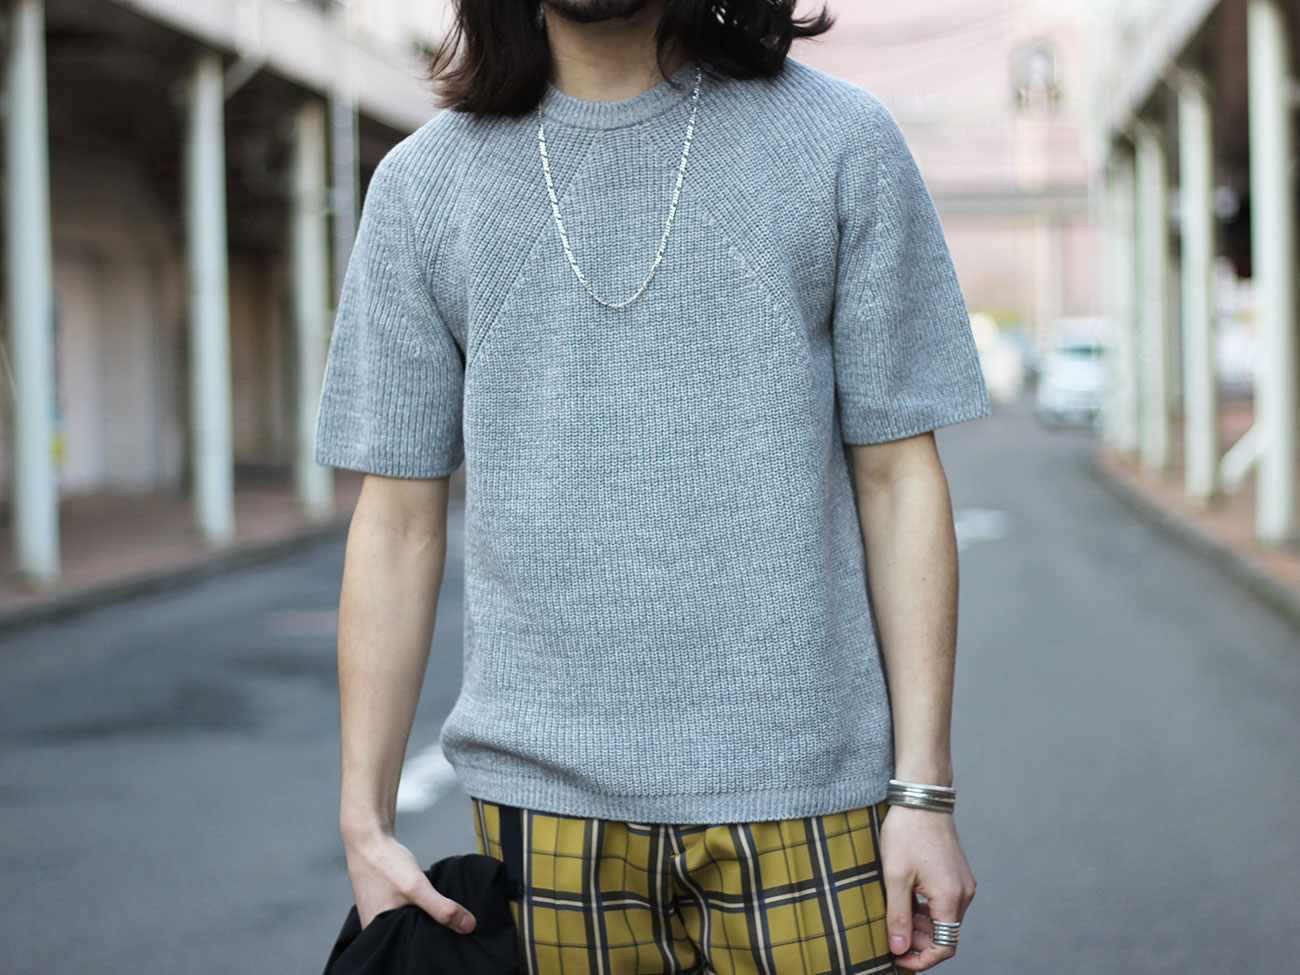 【BATONER】SHIGNATURE HALF-SLEEVE PULL-OVER